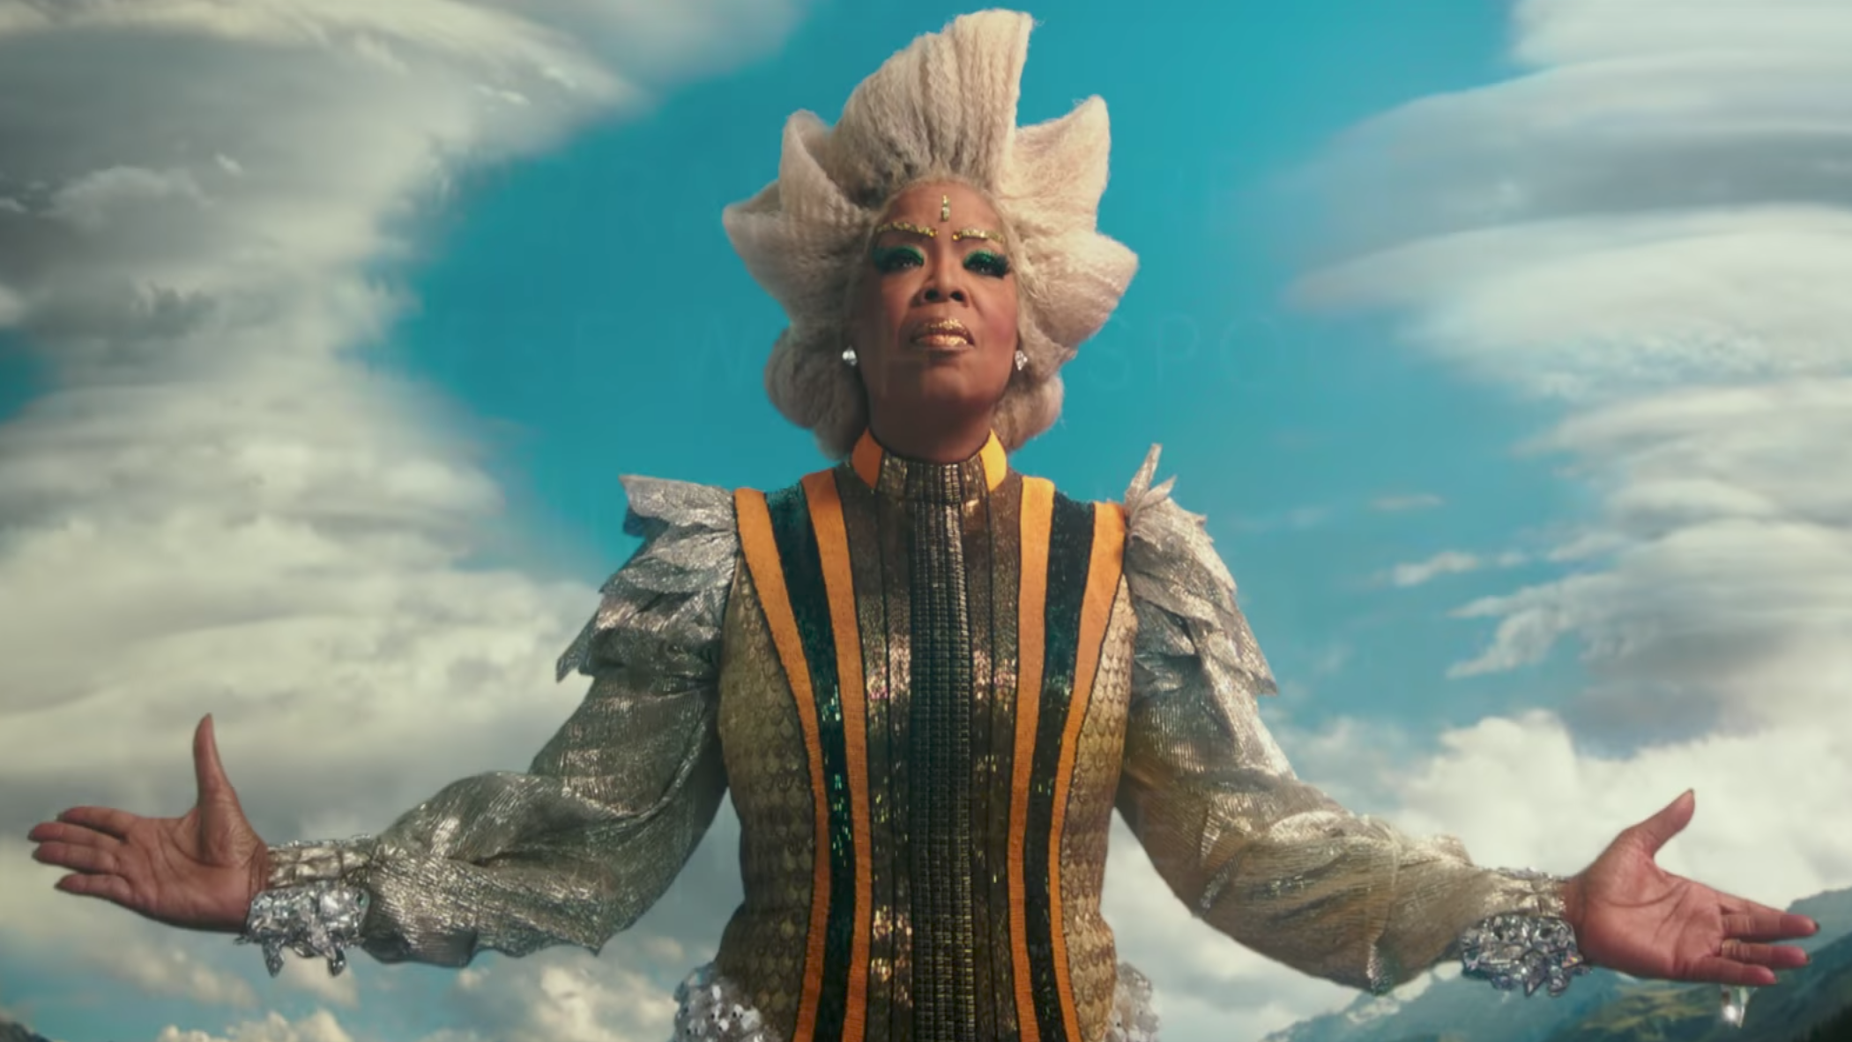 New Campaign CreatedFor Low-Income Kids To See 'A Wrinkle In Time' For Free